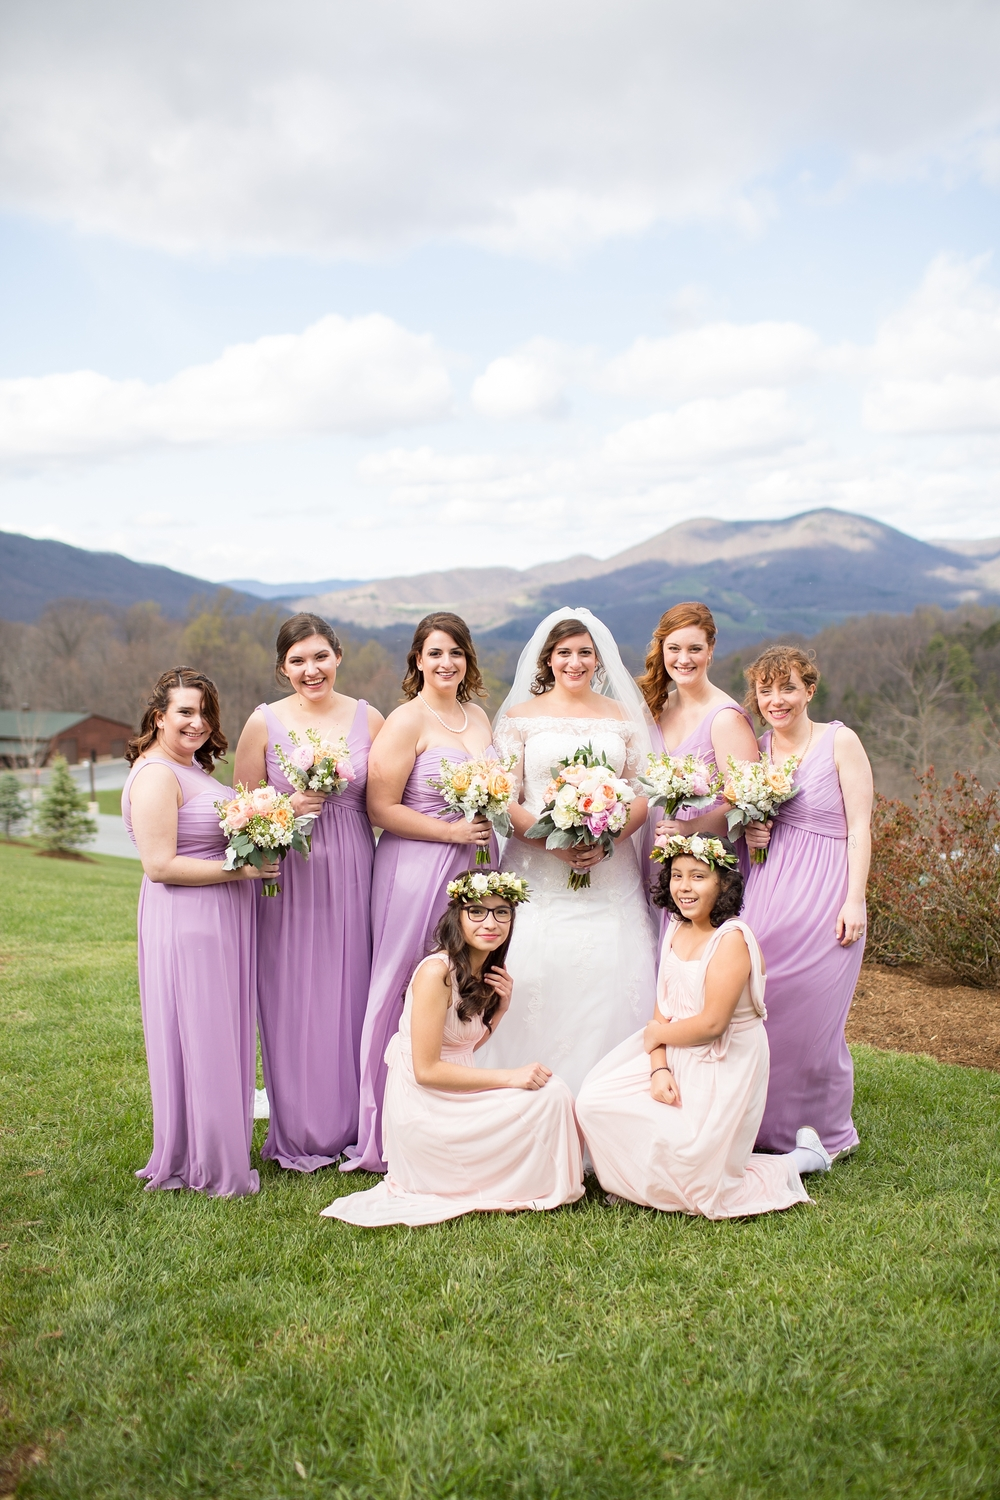 Simpson 2-Bridal Party-365_anna grace photography virginia wedding photographer irvine estate photo.jpg